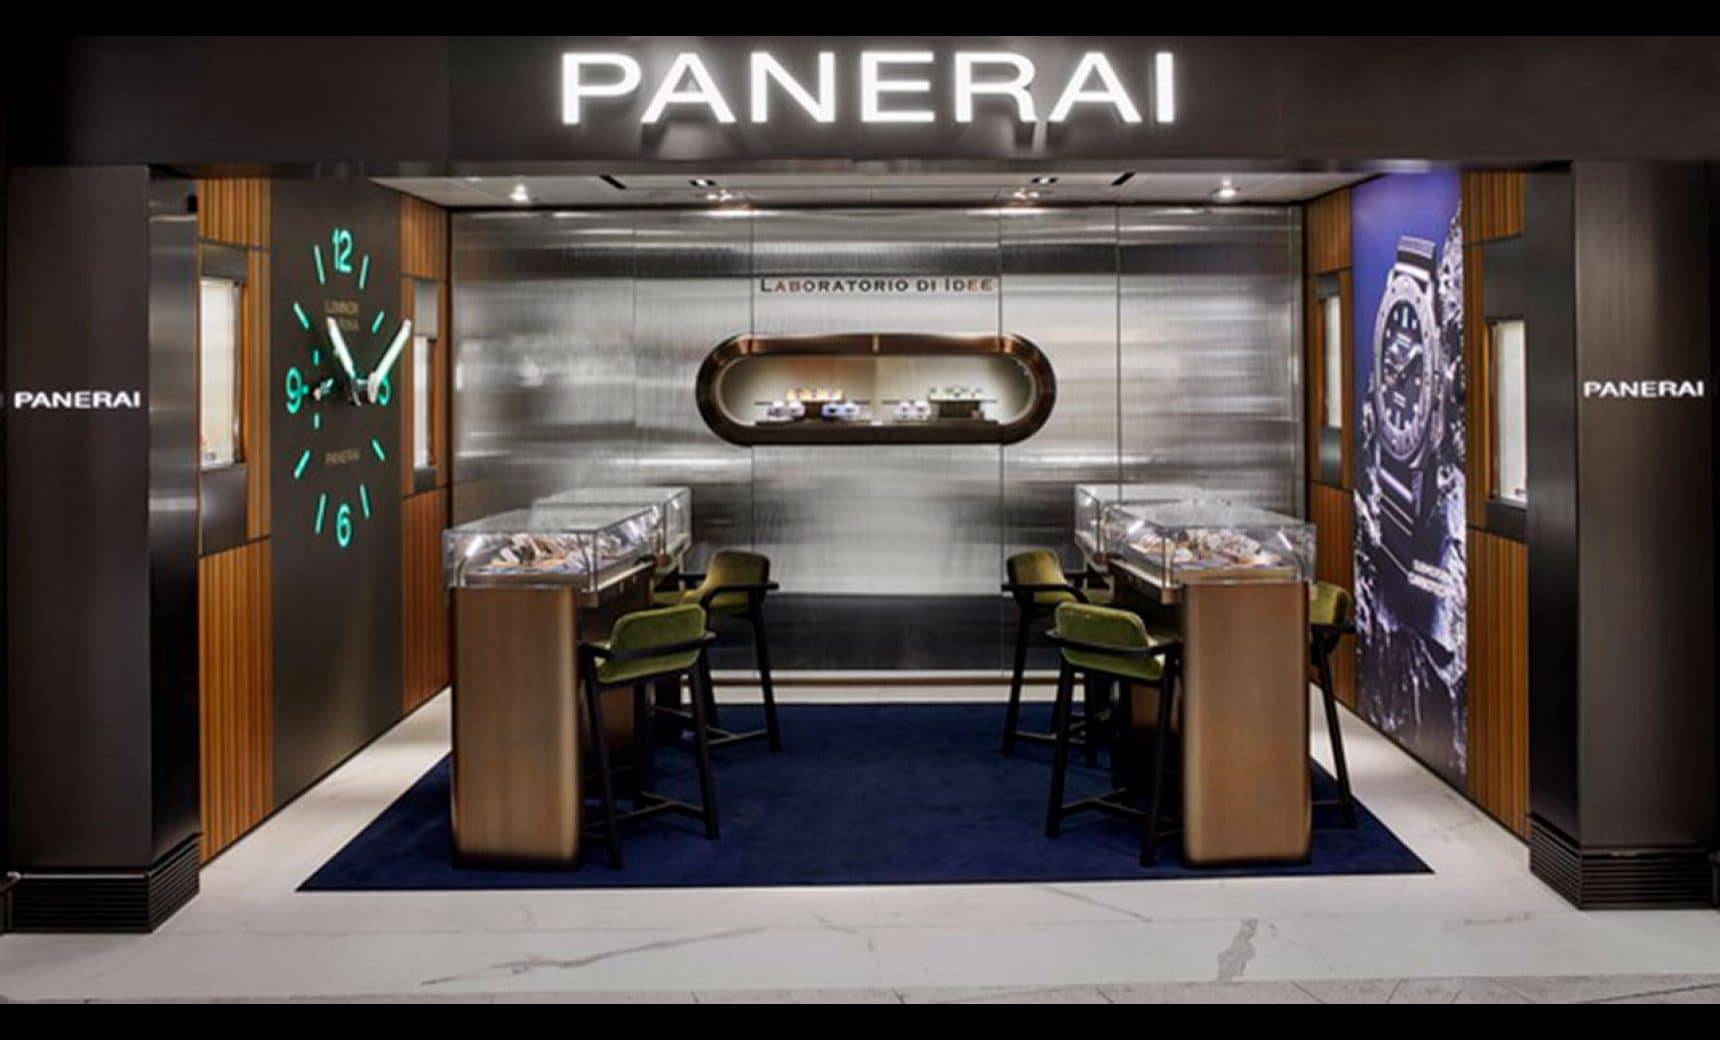 PANERAI OPENS ITS FIRST BOUTIQUE AT THE AIRPORT  IN HONG KONG AMONG THE WORLD